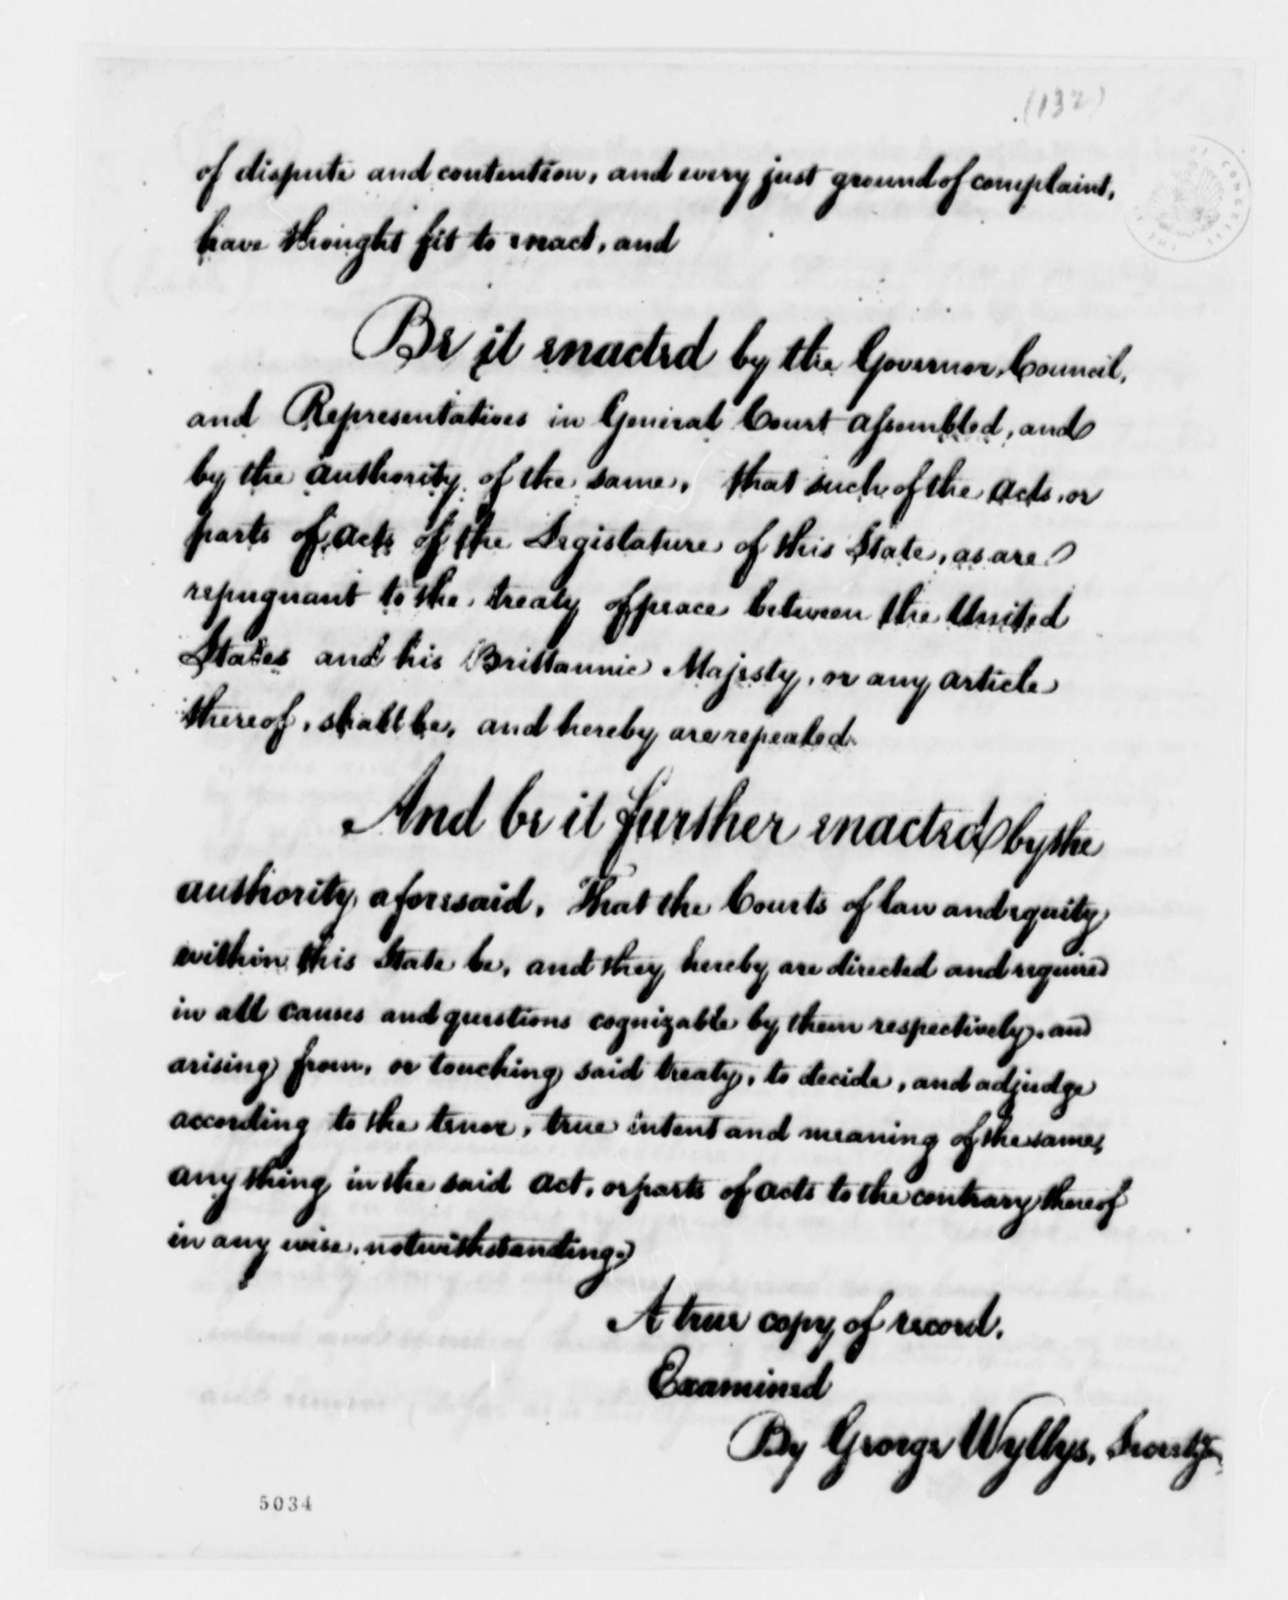 Connecticut General Assembly, May 9, 1787, Act